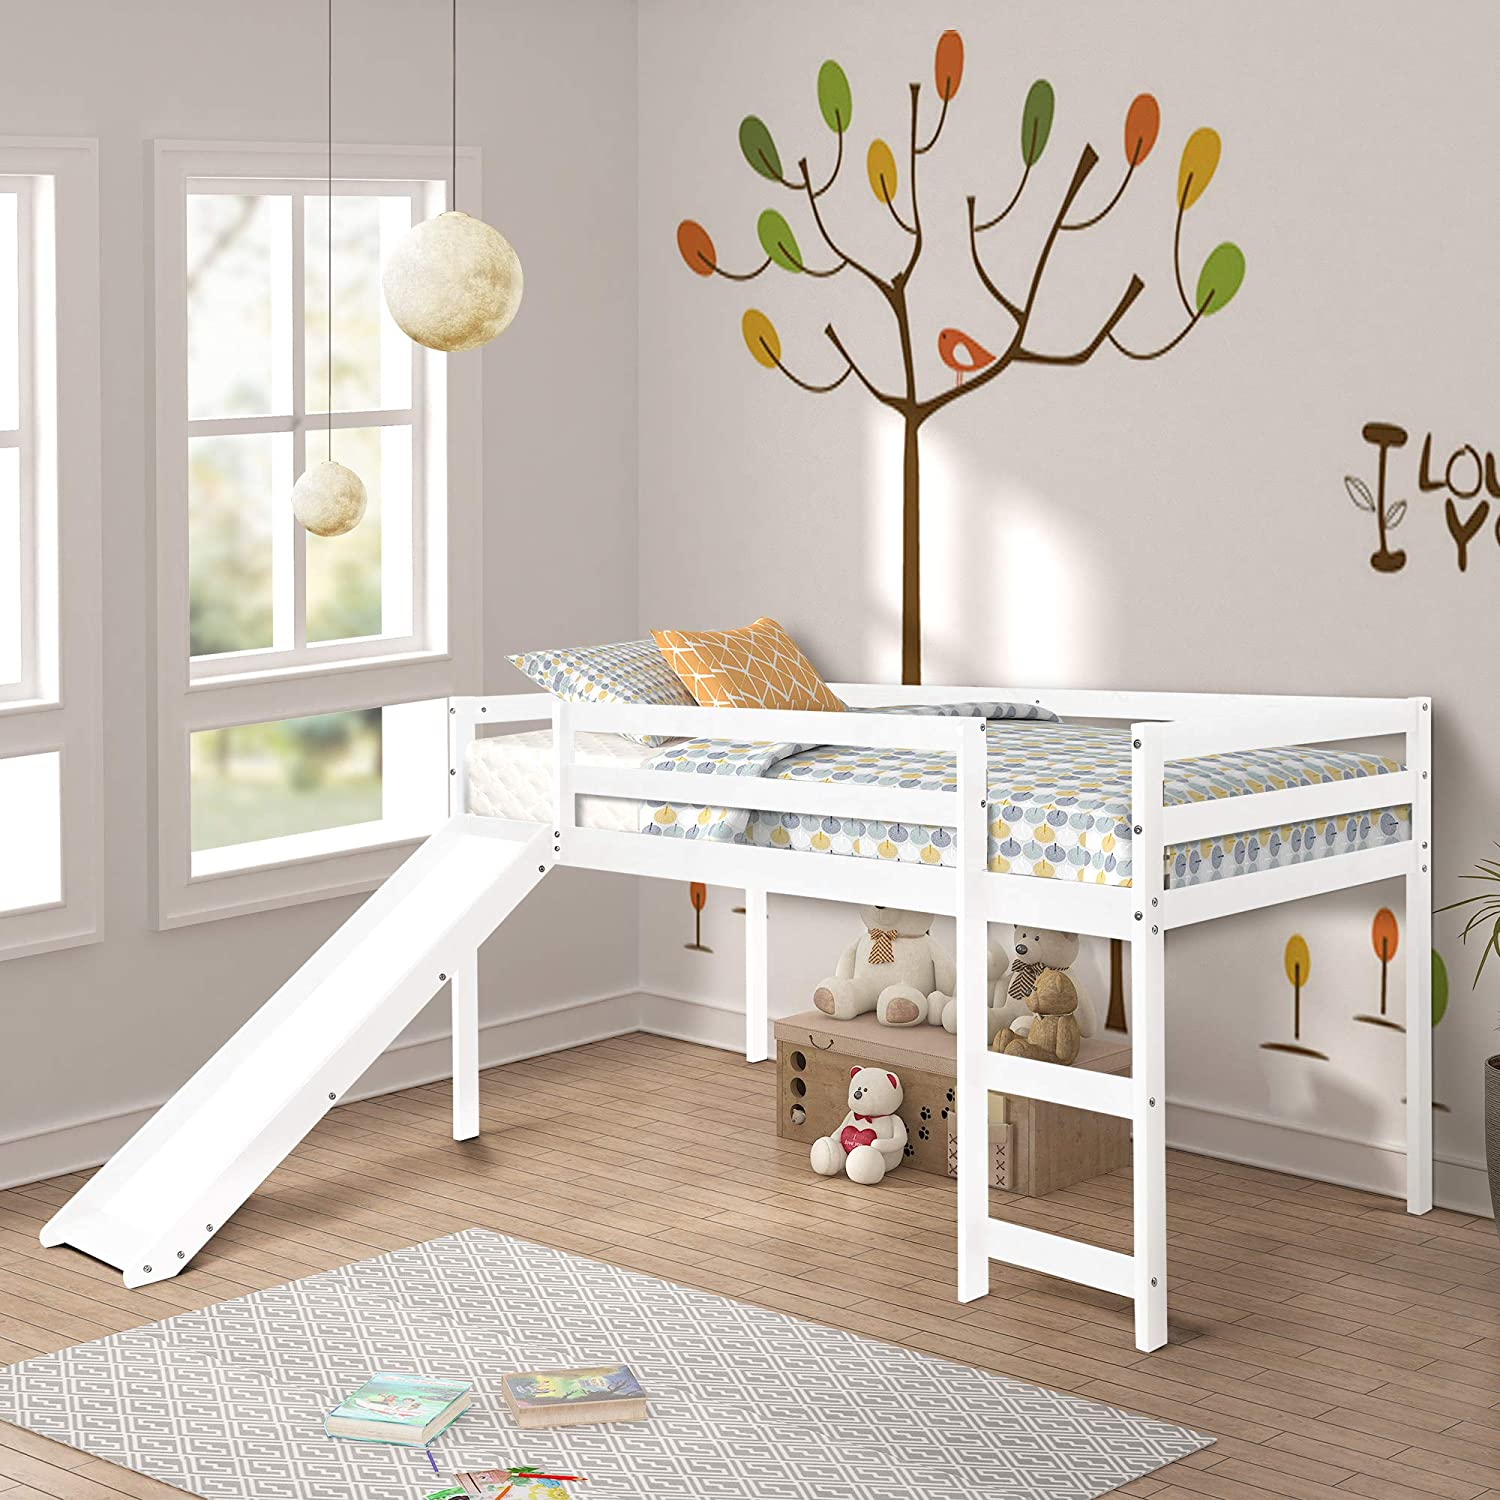 Amazon Com Twin Loft Bed With Slide For Kids Wood Low Sturdy